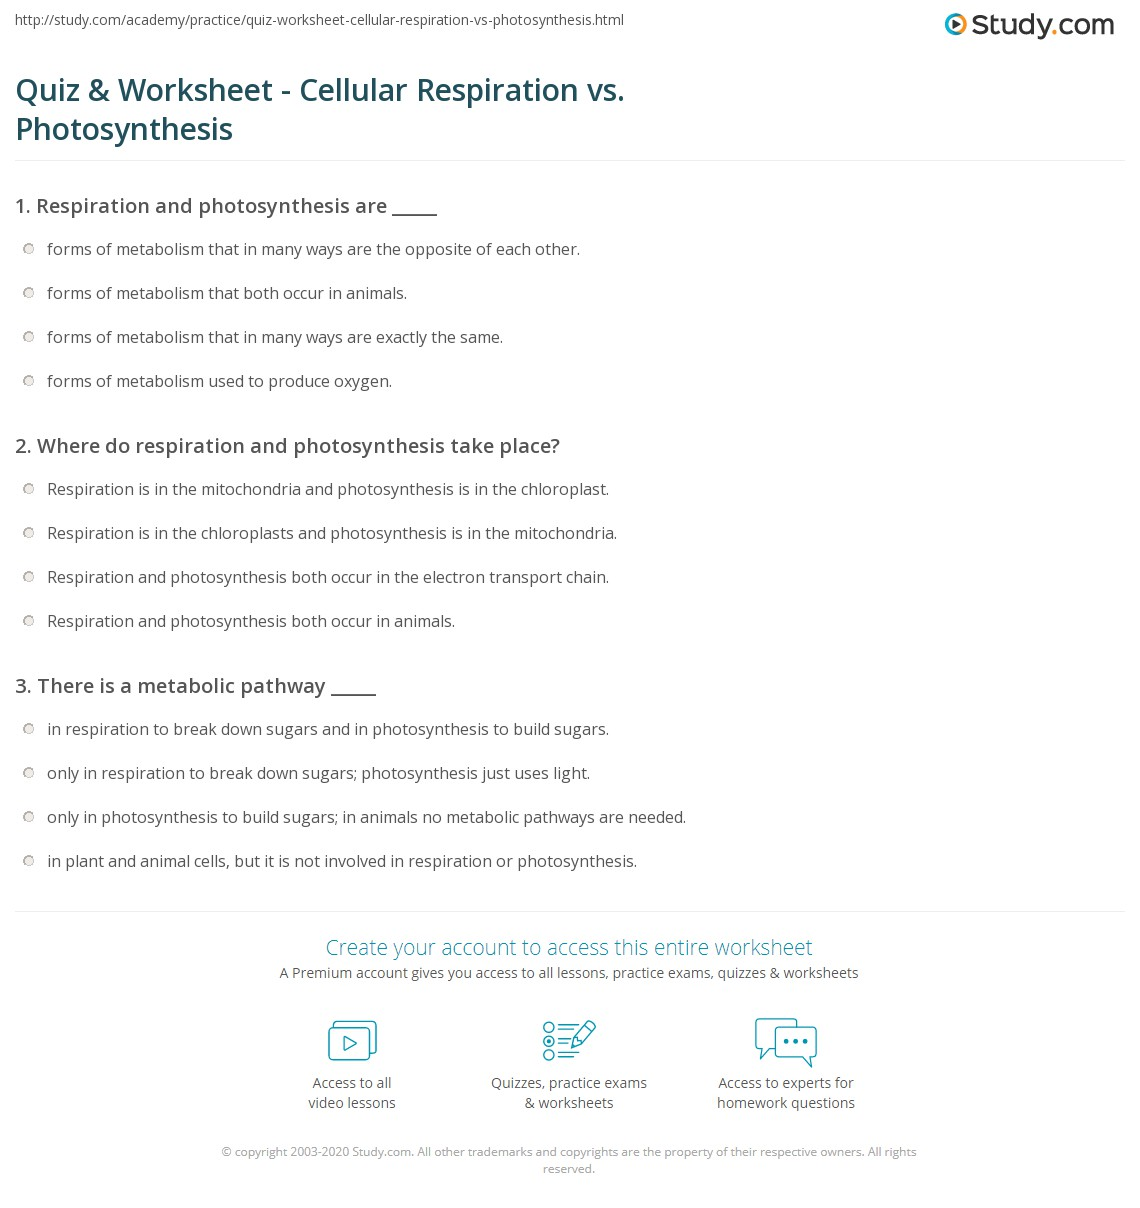 Quiz Worksheet Cellular Respiration vs Photosynthesis – Photosynthesis and Cellular Respiration Worksheet Answers